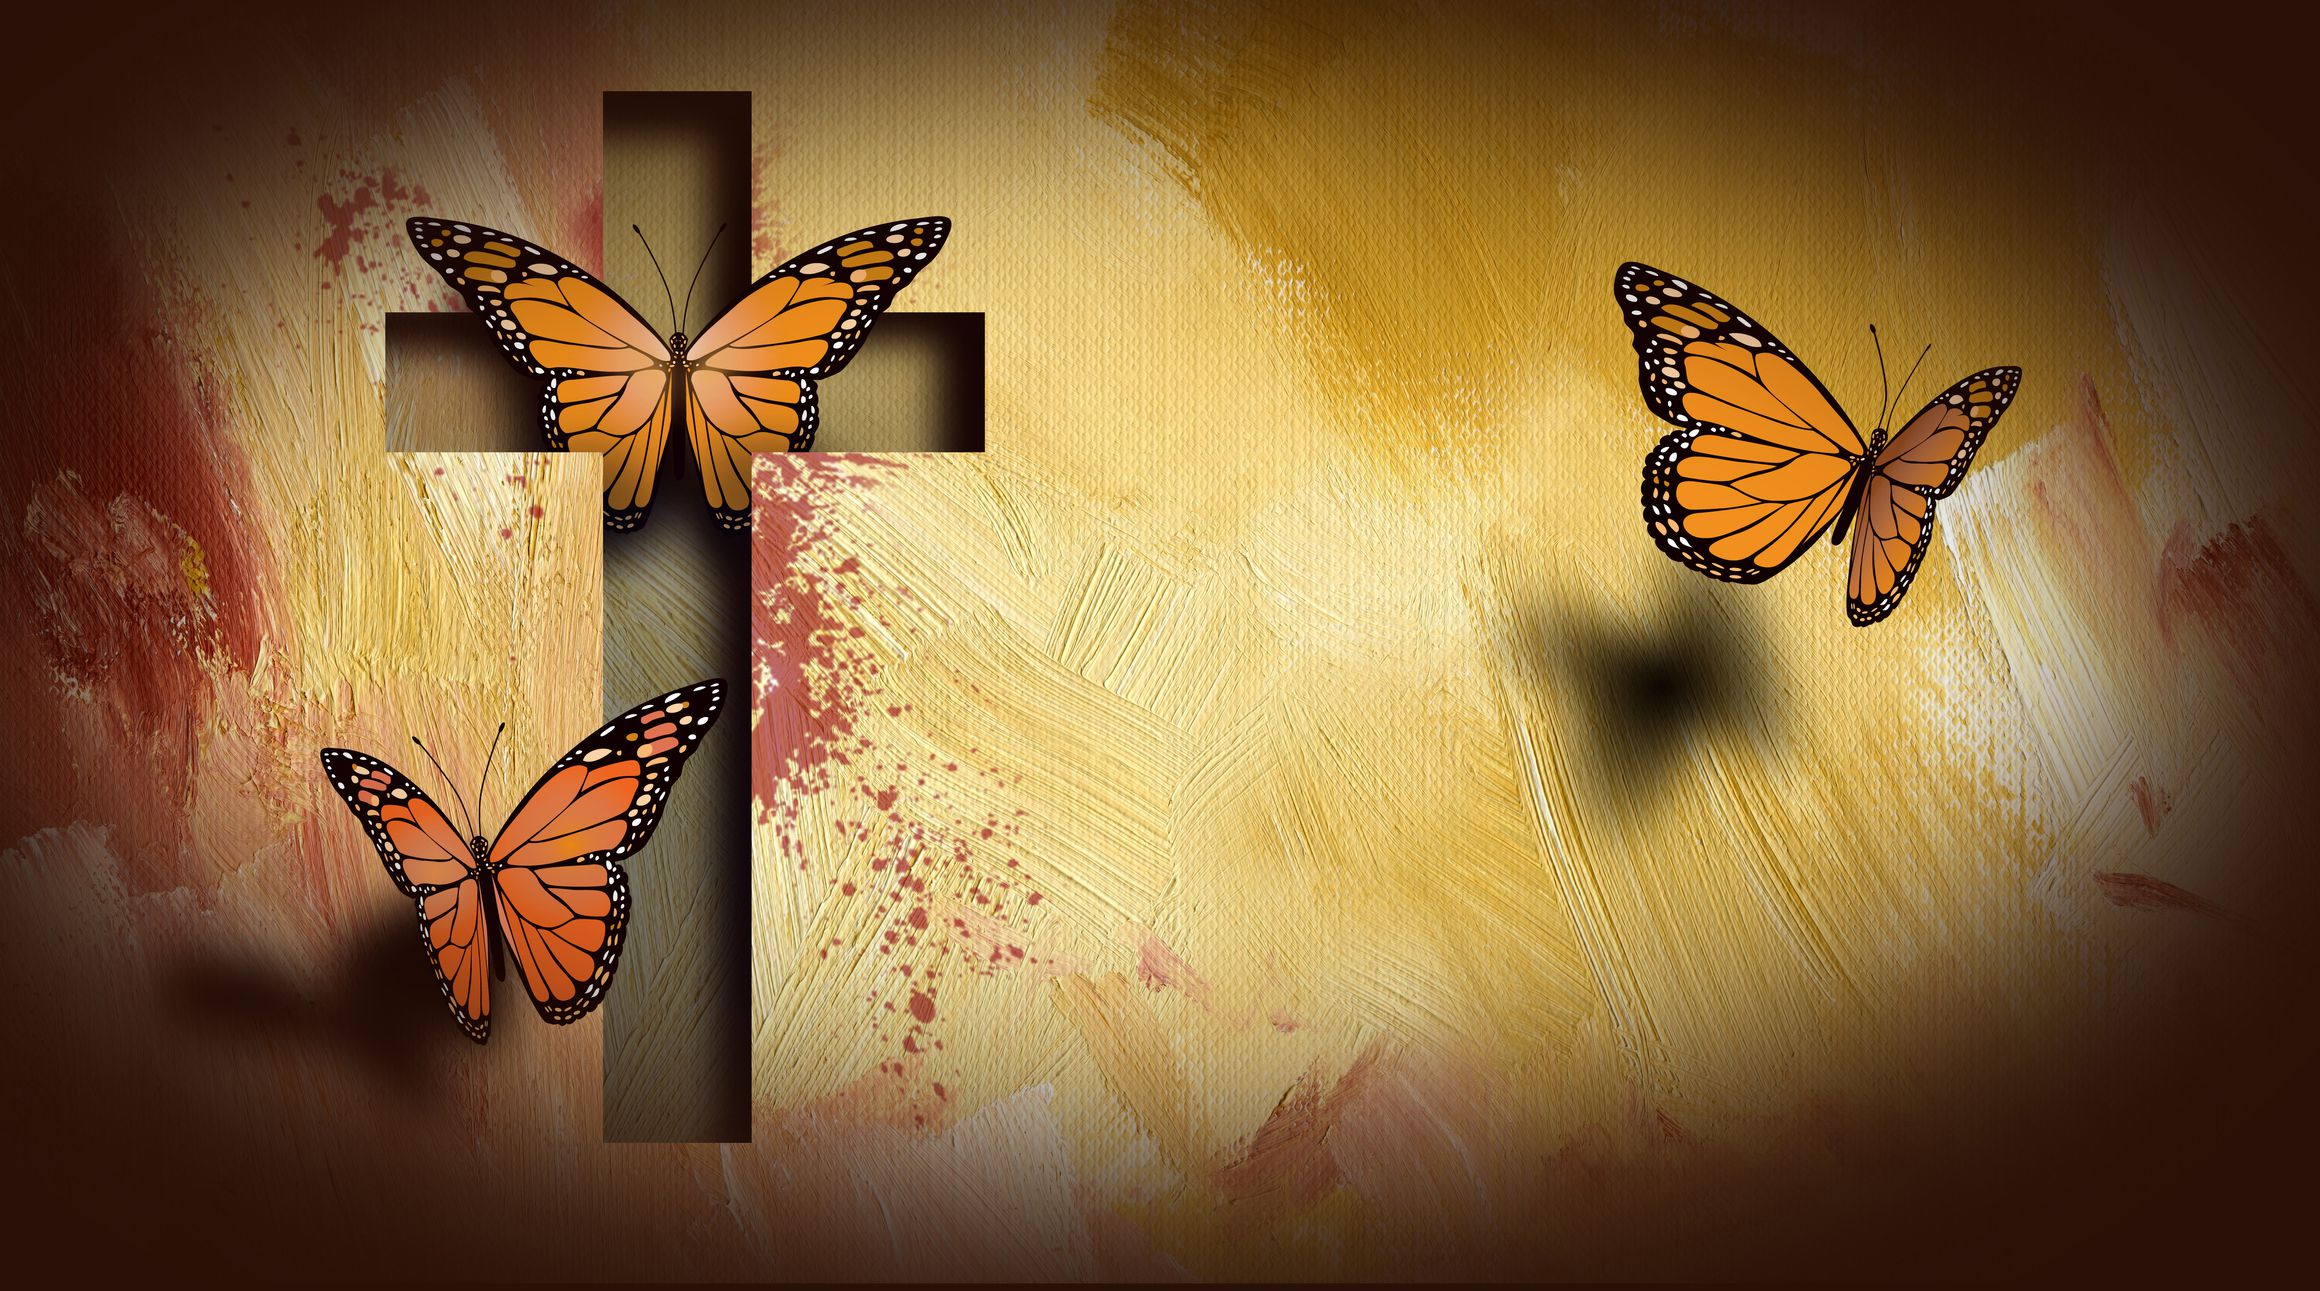 Butterflies in the Bible: Meaning and Symbolism